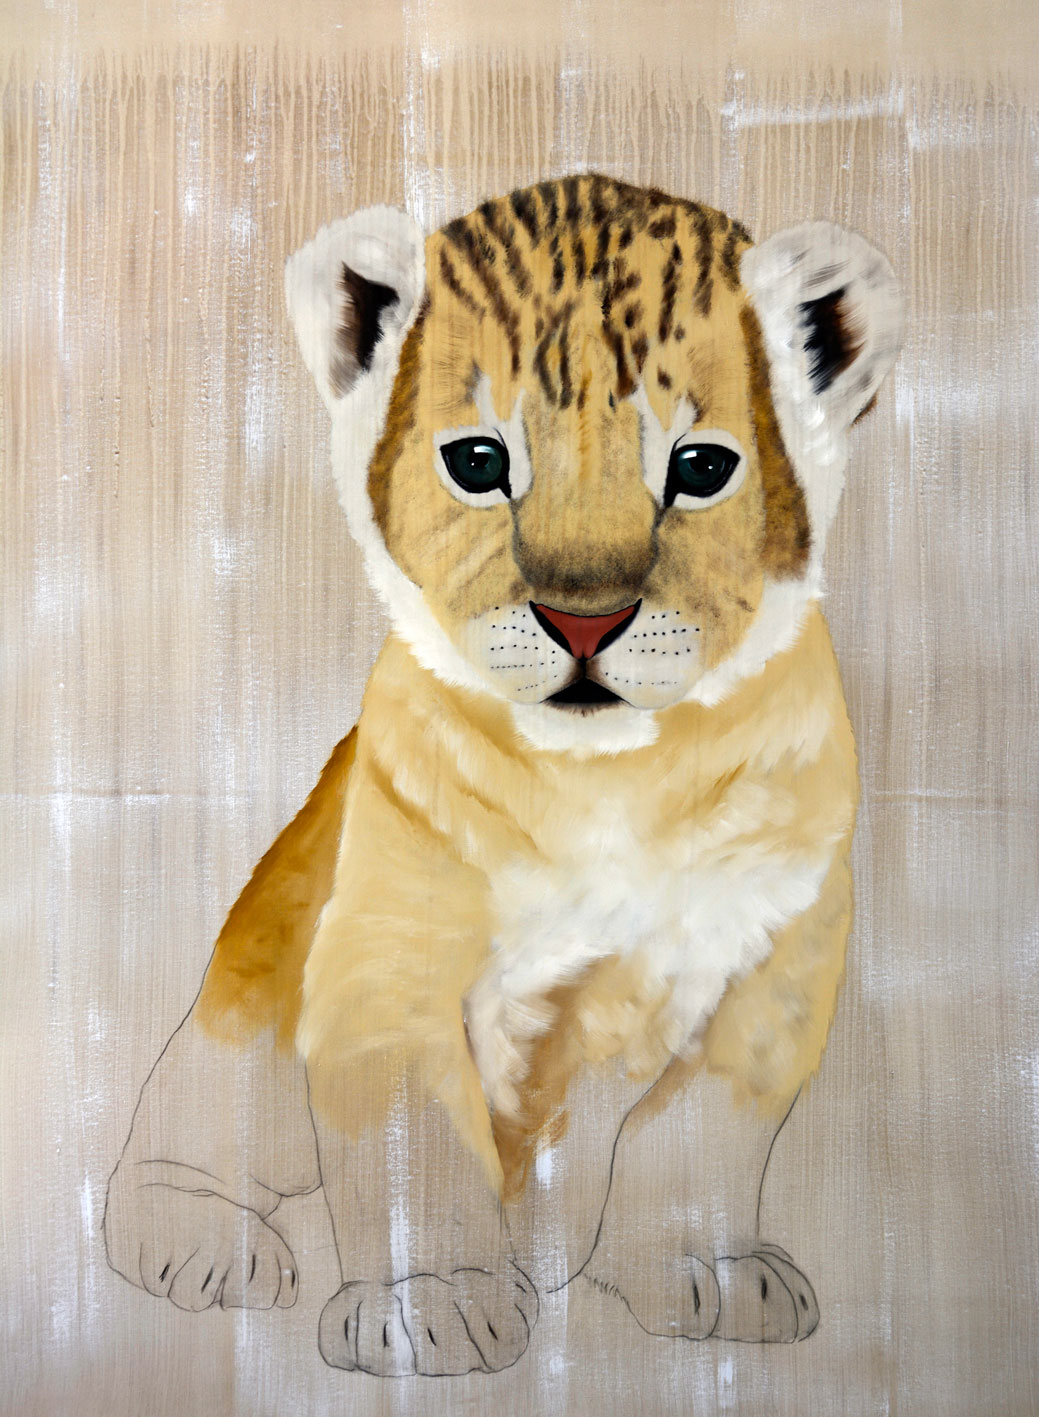 PANTHERA LEO PERSICA divers Thierry Bisch Contemporary painter animals painting art decoration nature biodiversity conservation